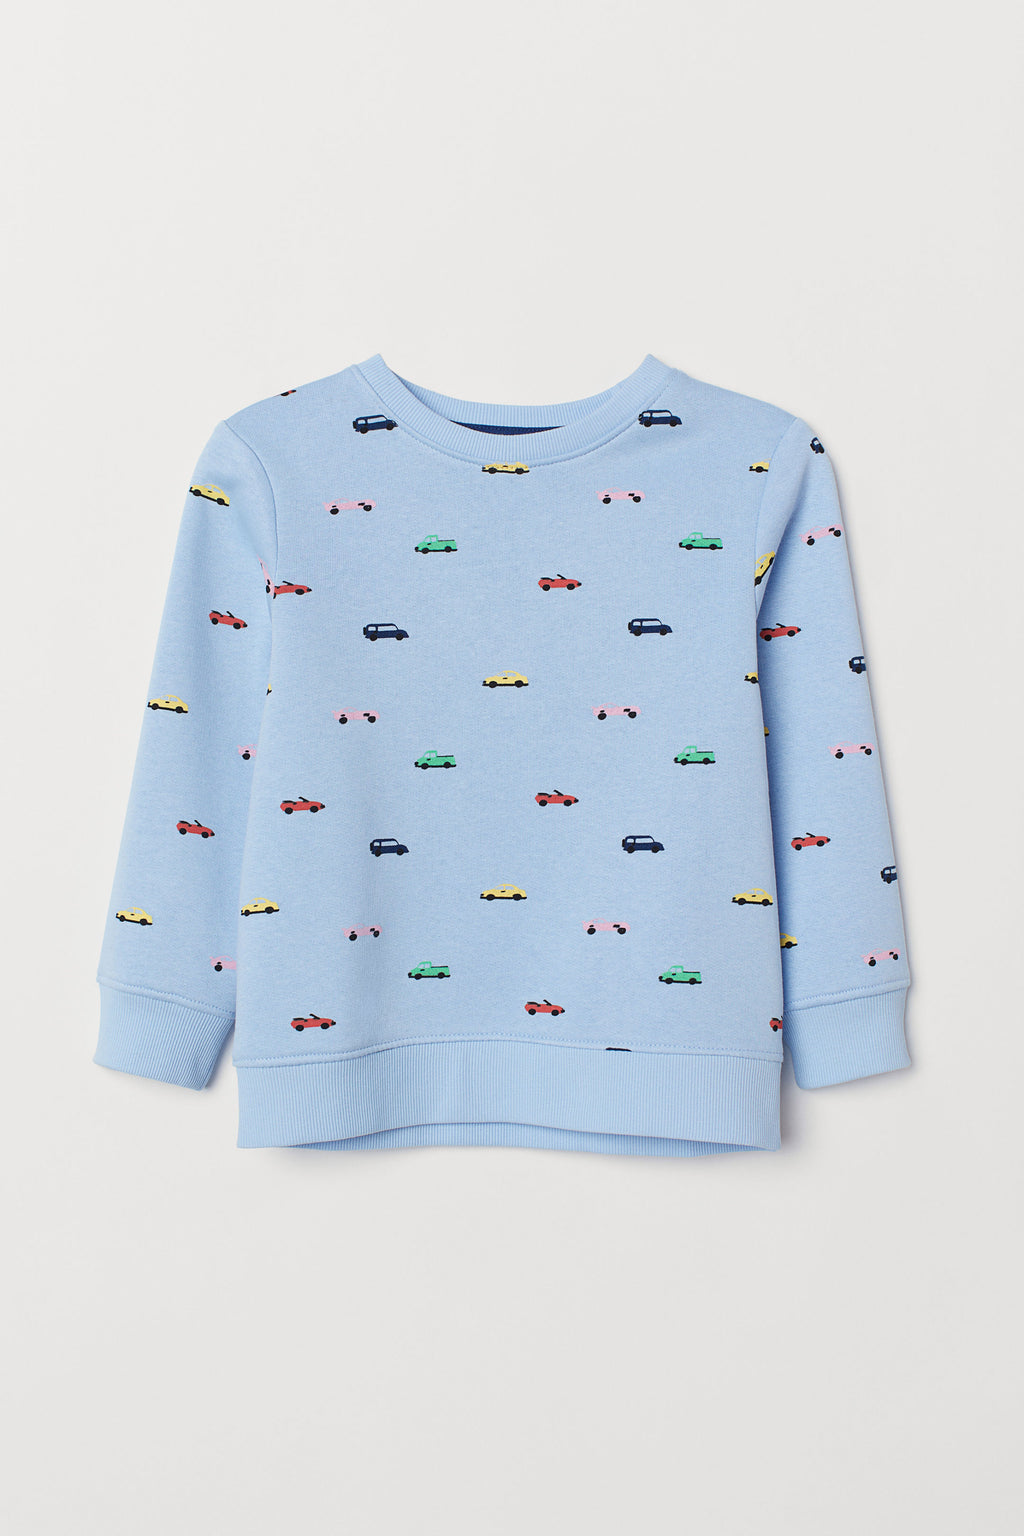 Buzo H&M Sweatshirt with Printed Design